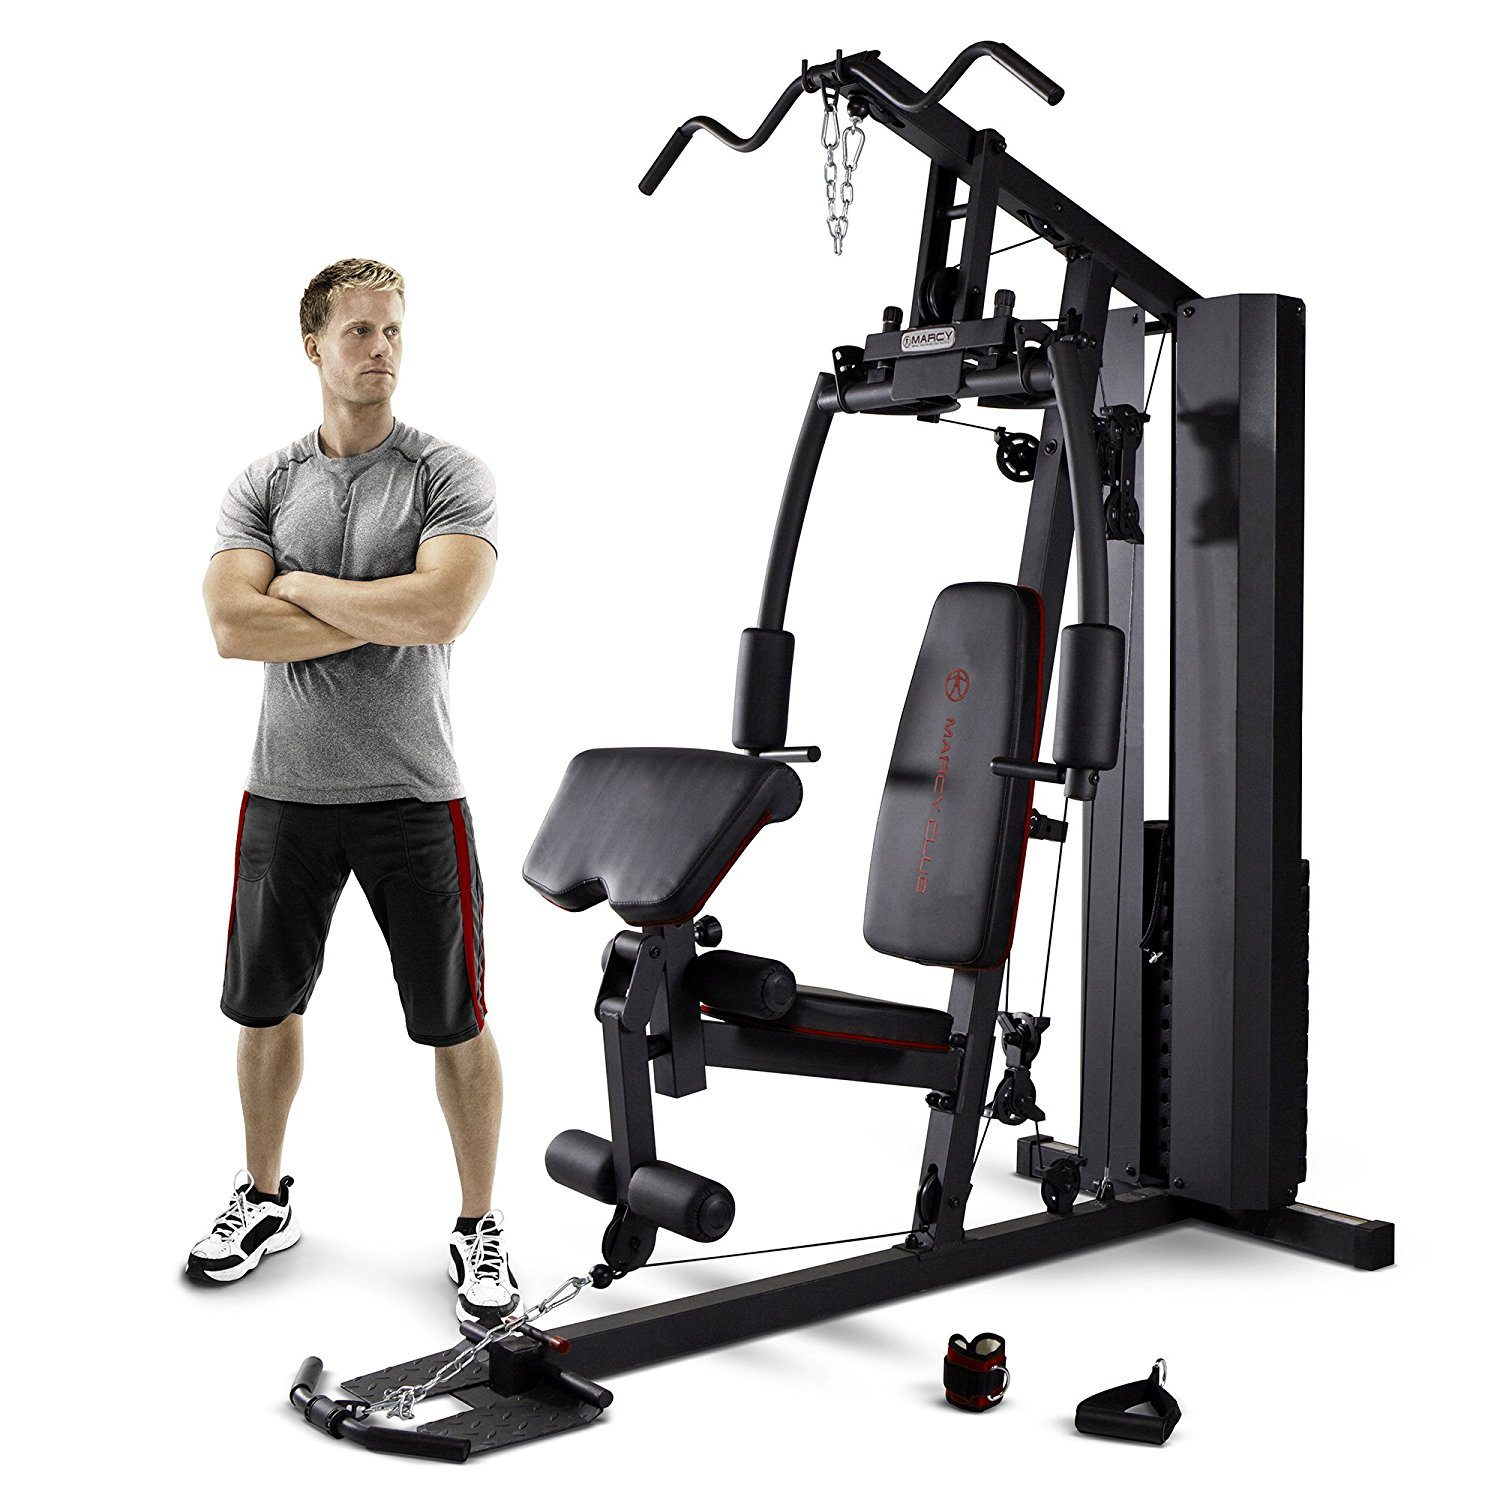 Marcy MKM 81010 Stack Home Gym, 200 Lb